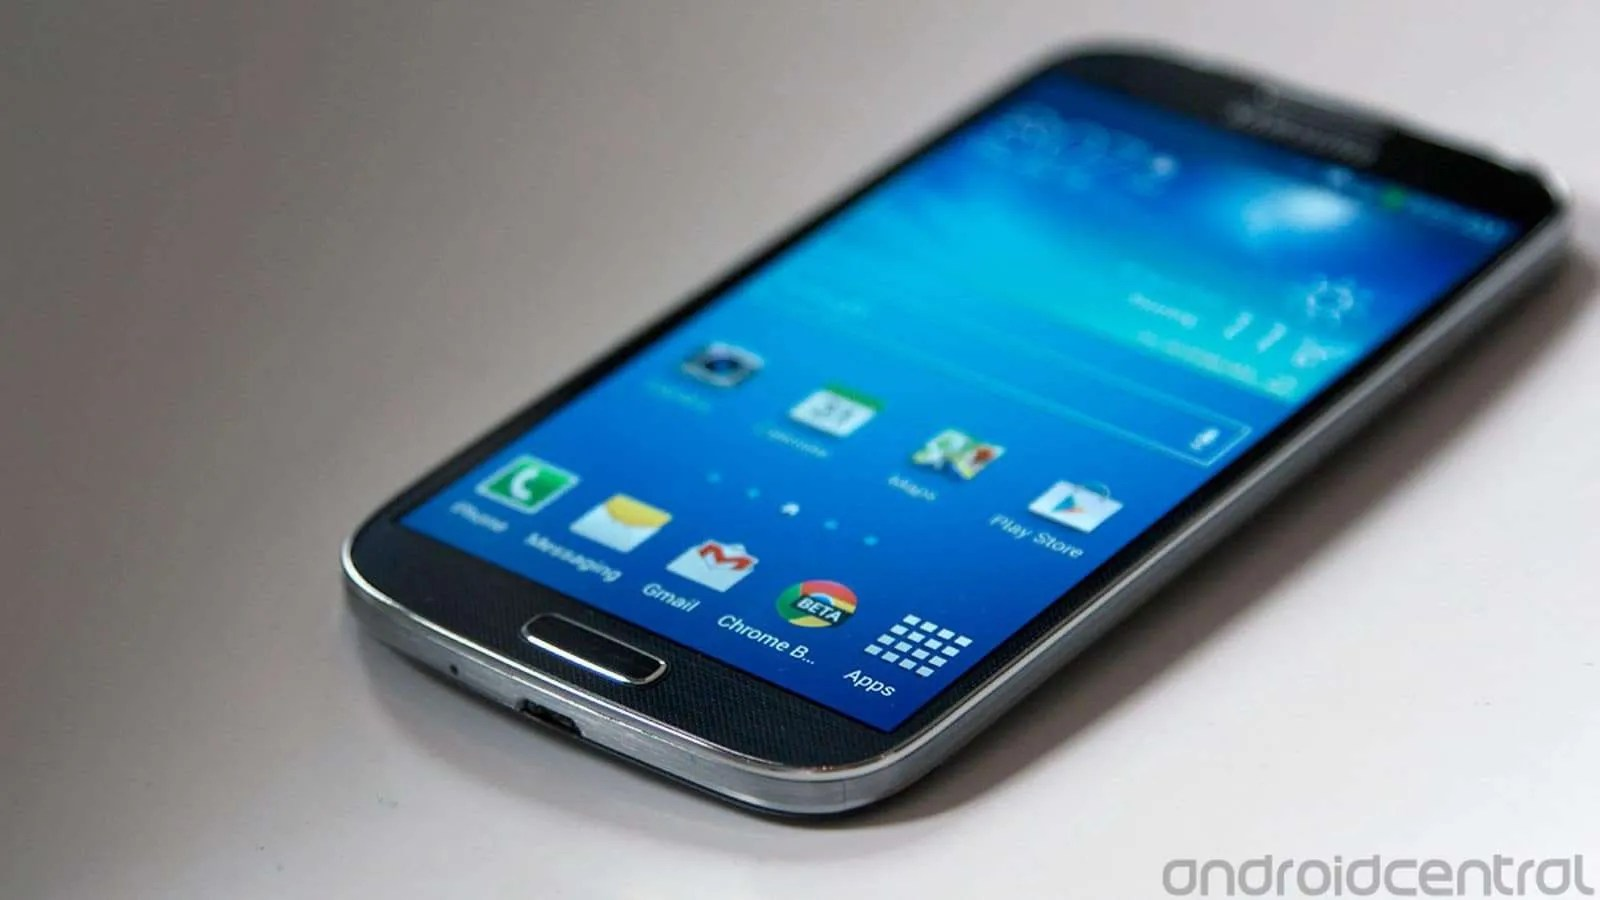 The Galaxy S4 fails the cool test